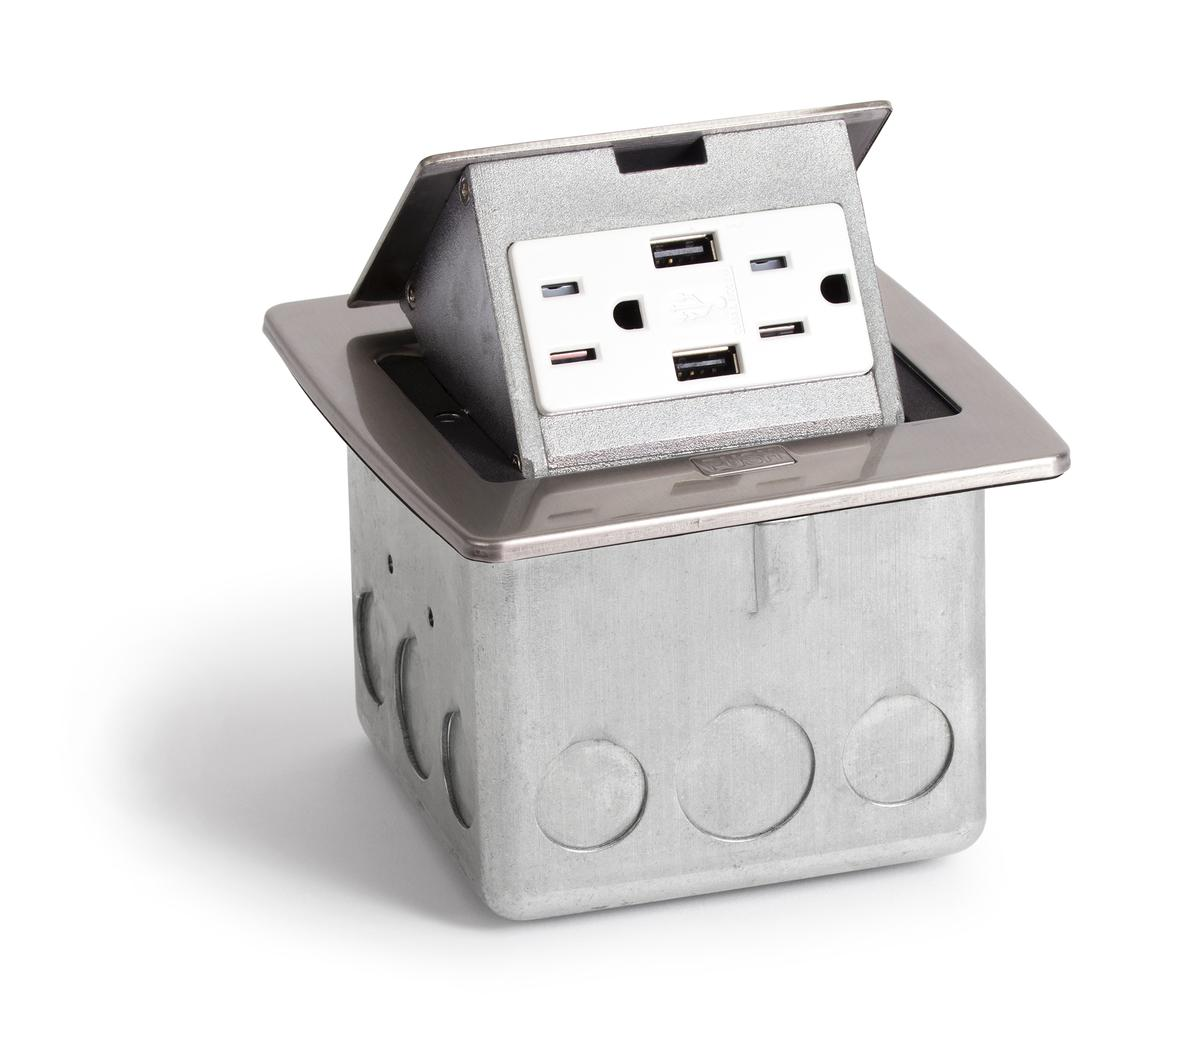 Countertop Usb : Lew Electric PUFP-CT-SS-2USB Countertop Pop Up Box w/ 2 USB & 2 Power ...